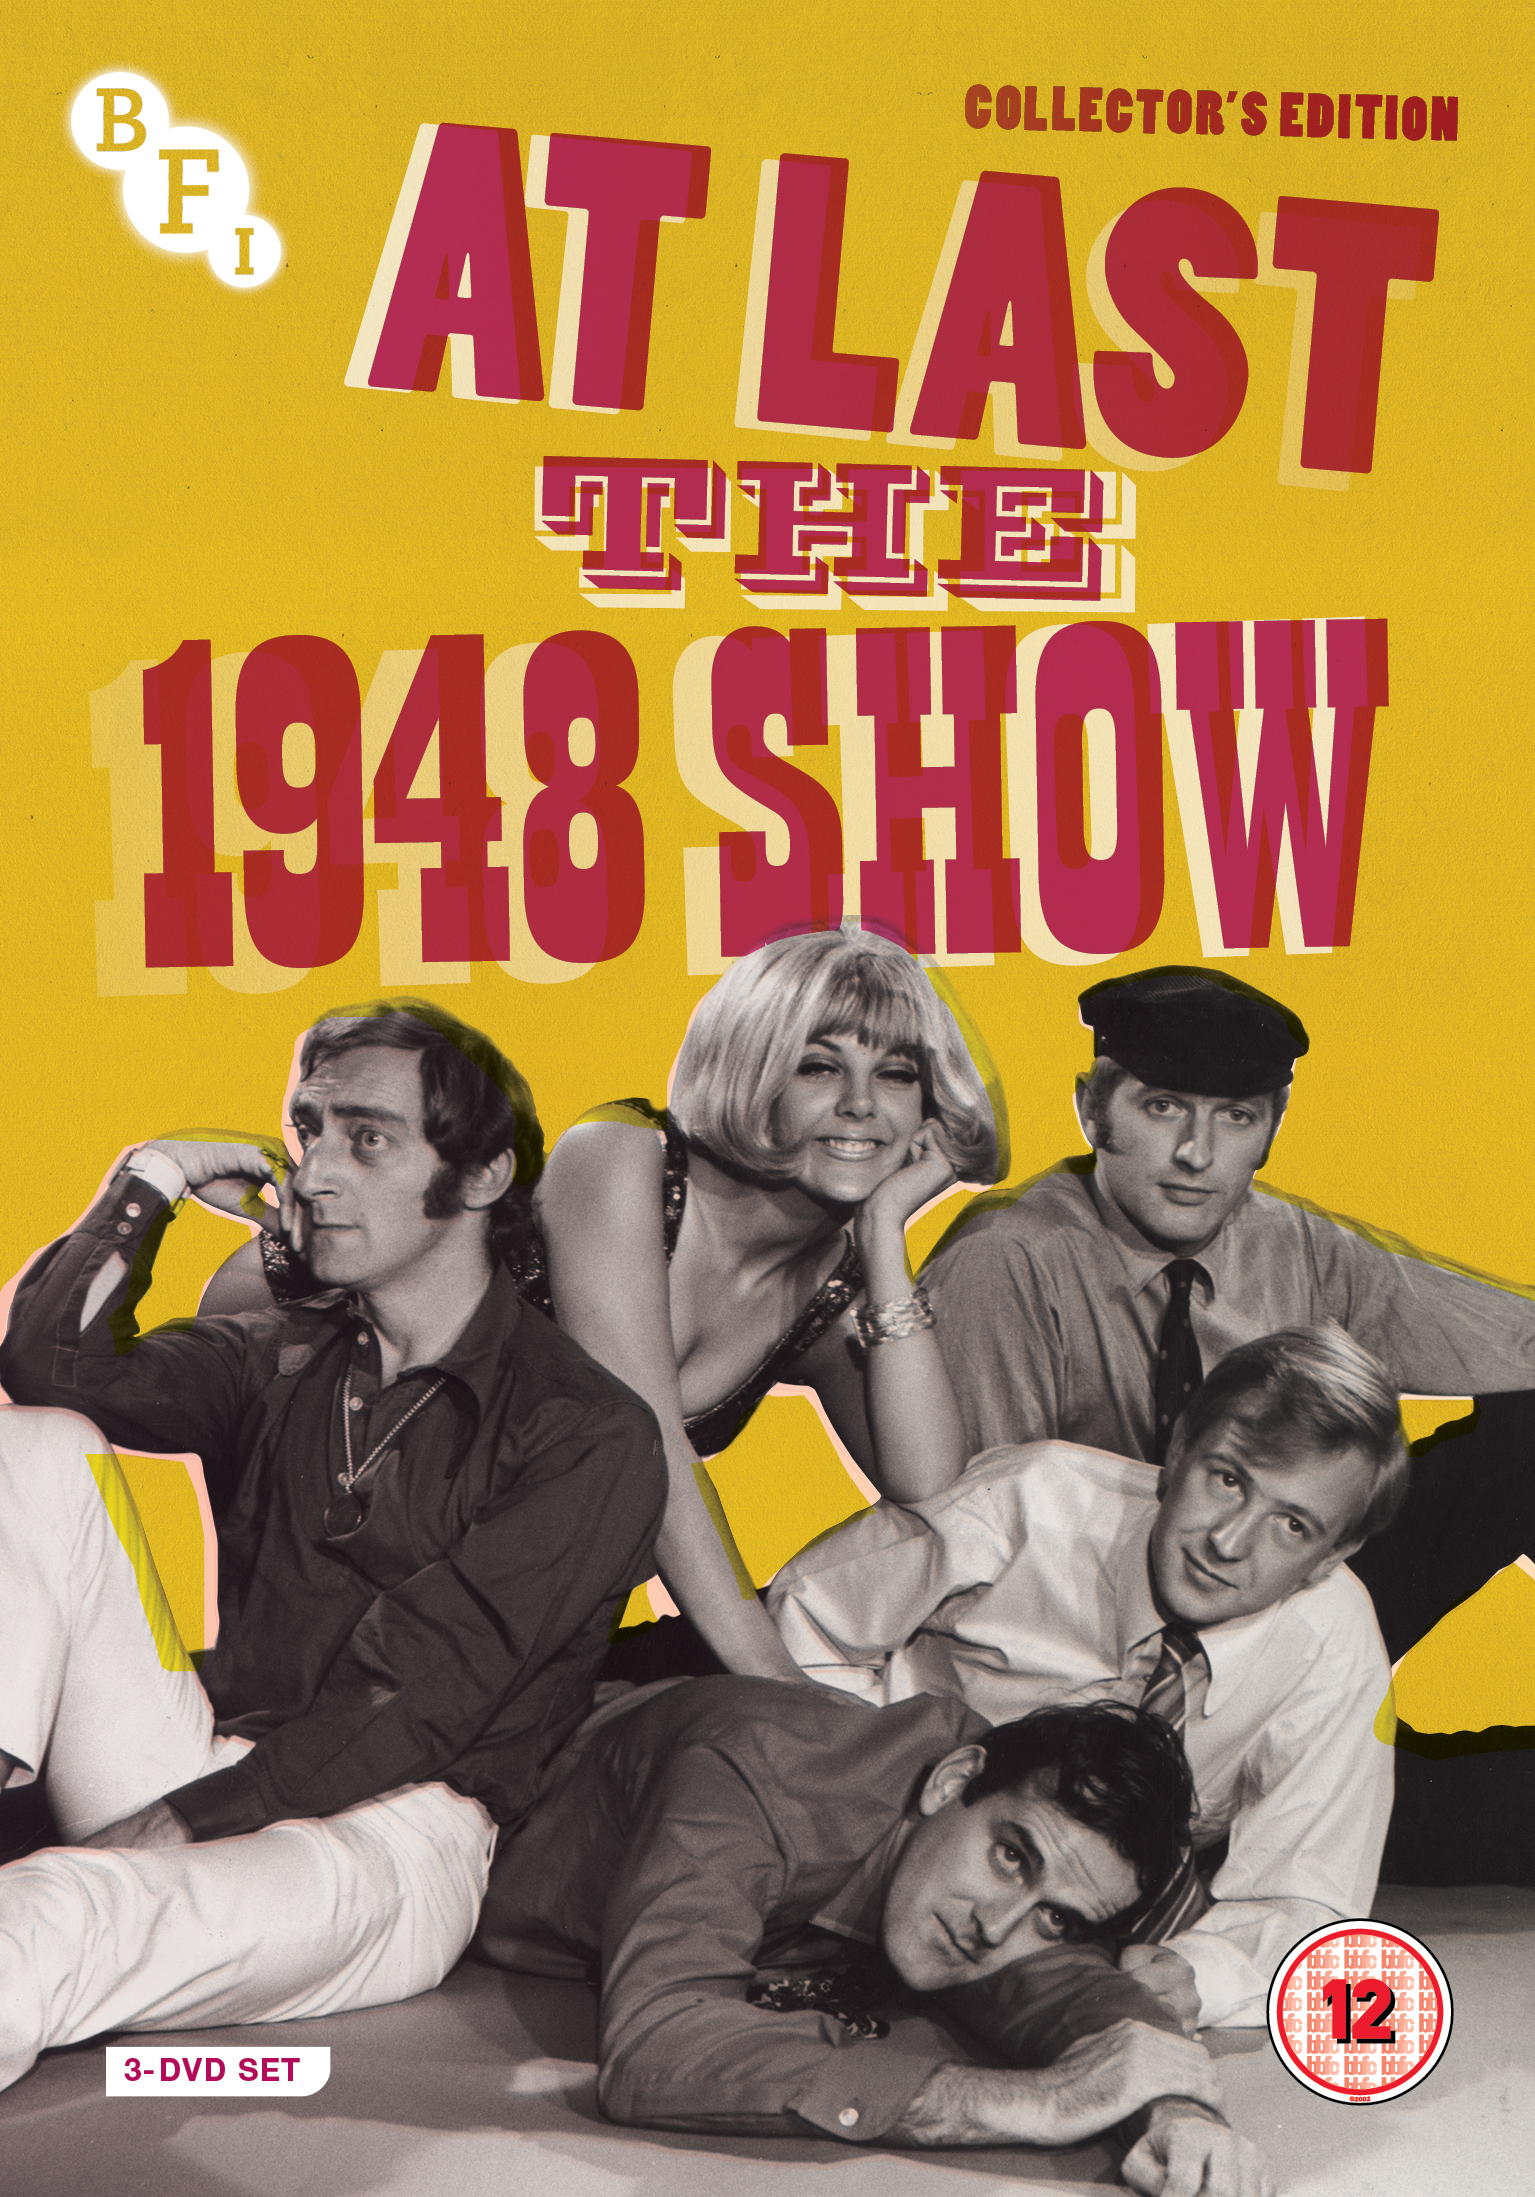 Buy At Last the 1948 Show (3-Disc DVD Set)